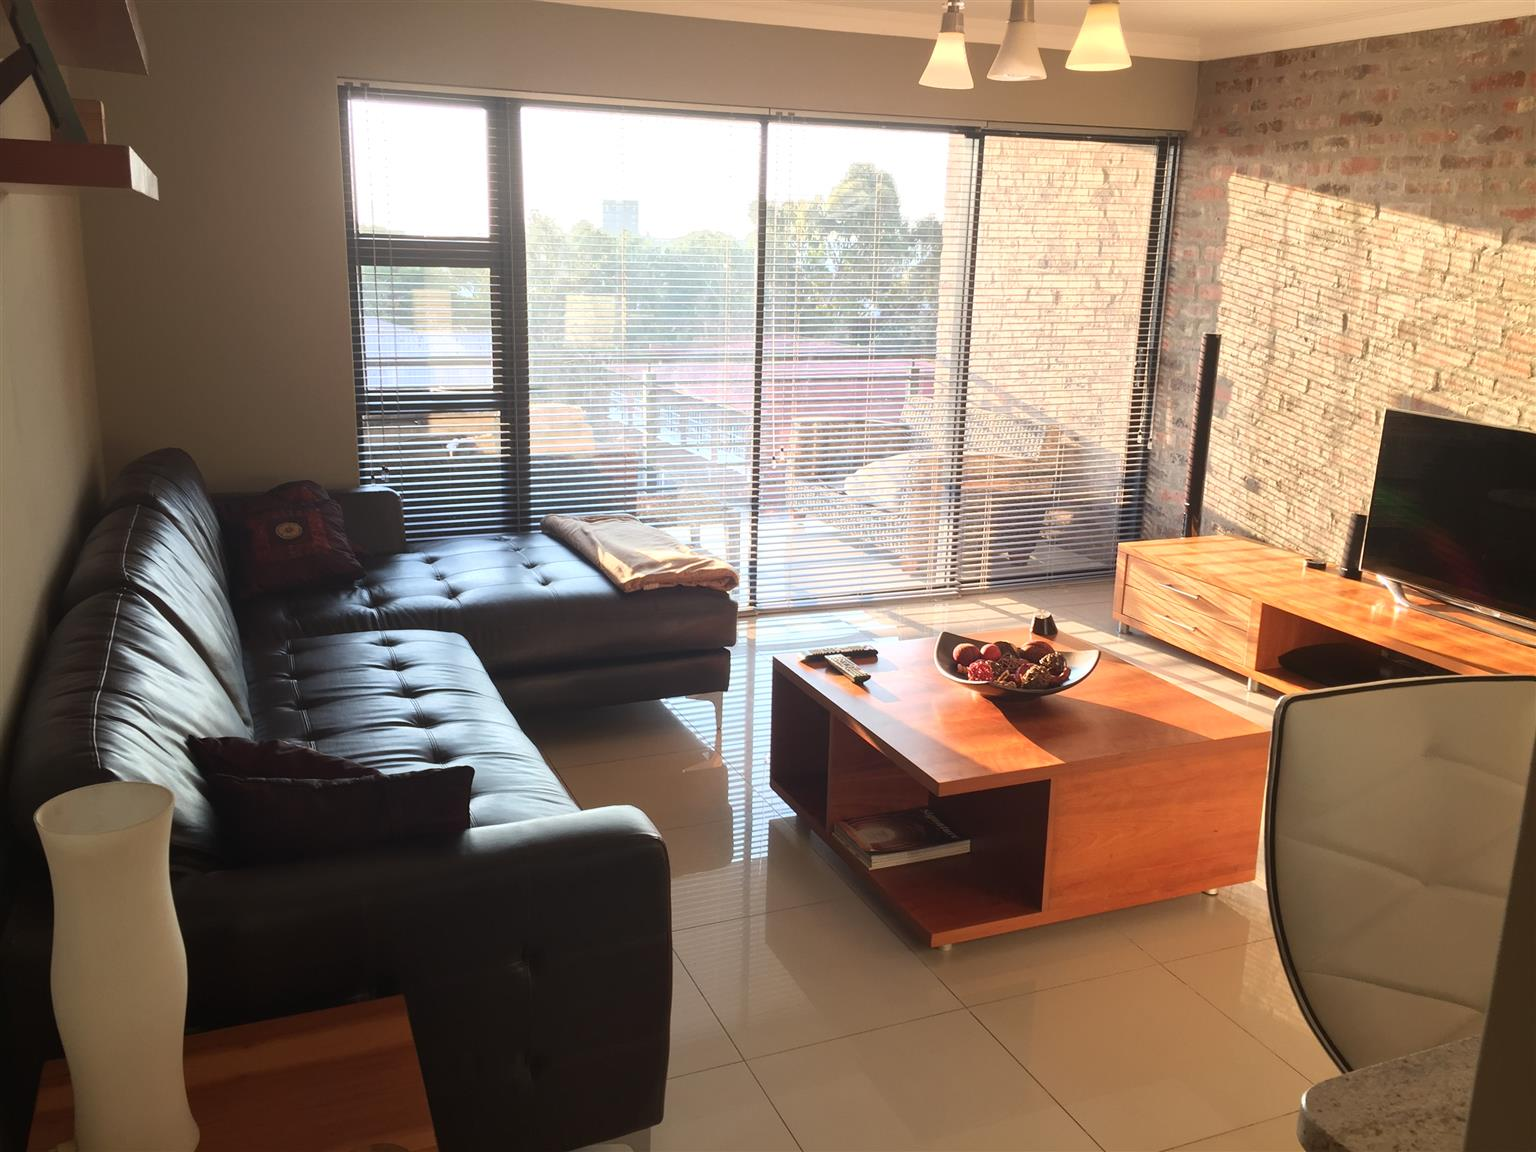 2 Bedroom 2 Bathroom 3rd Floor Apartment in Solheim Germiston with stunning views of the city